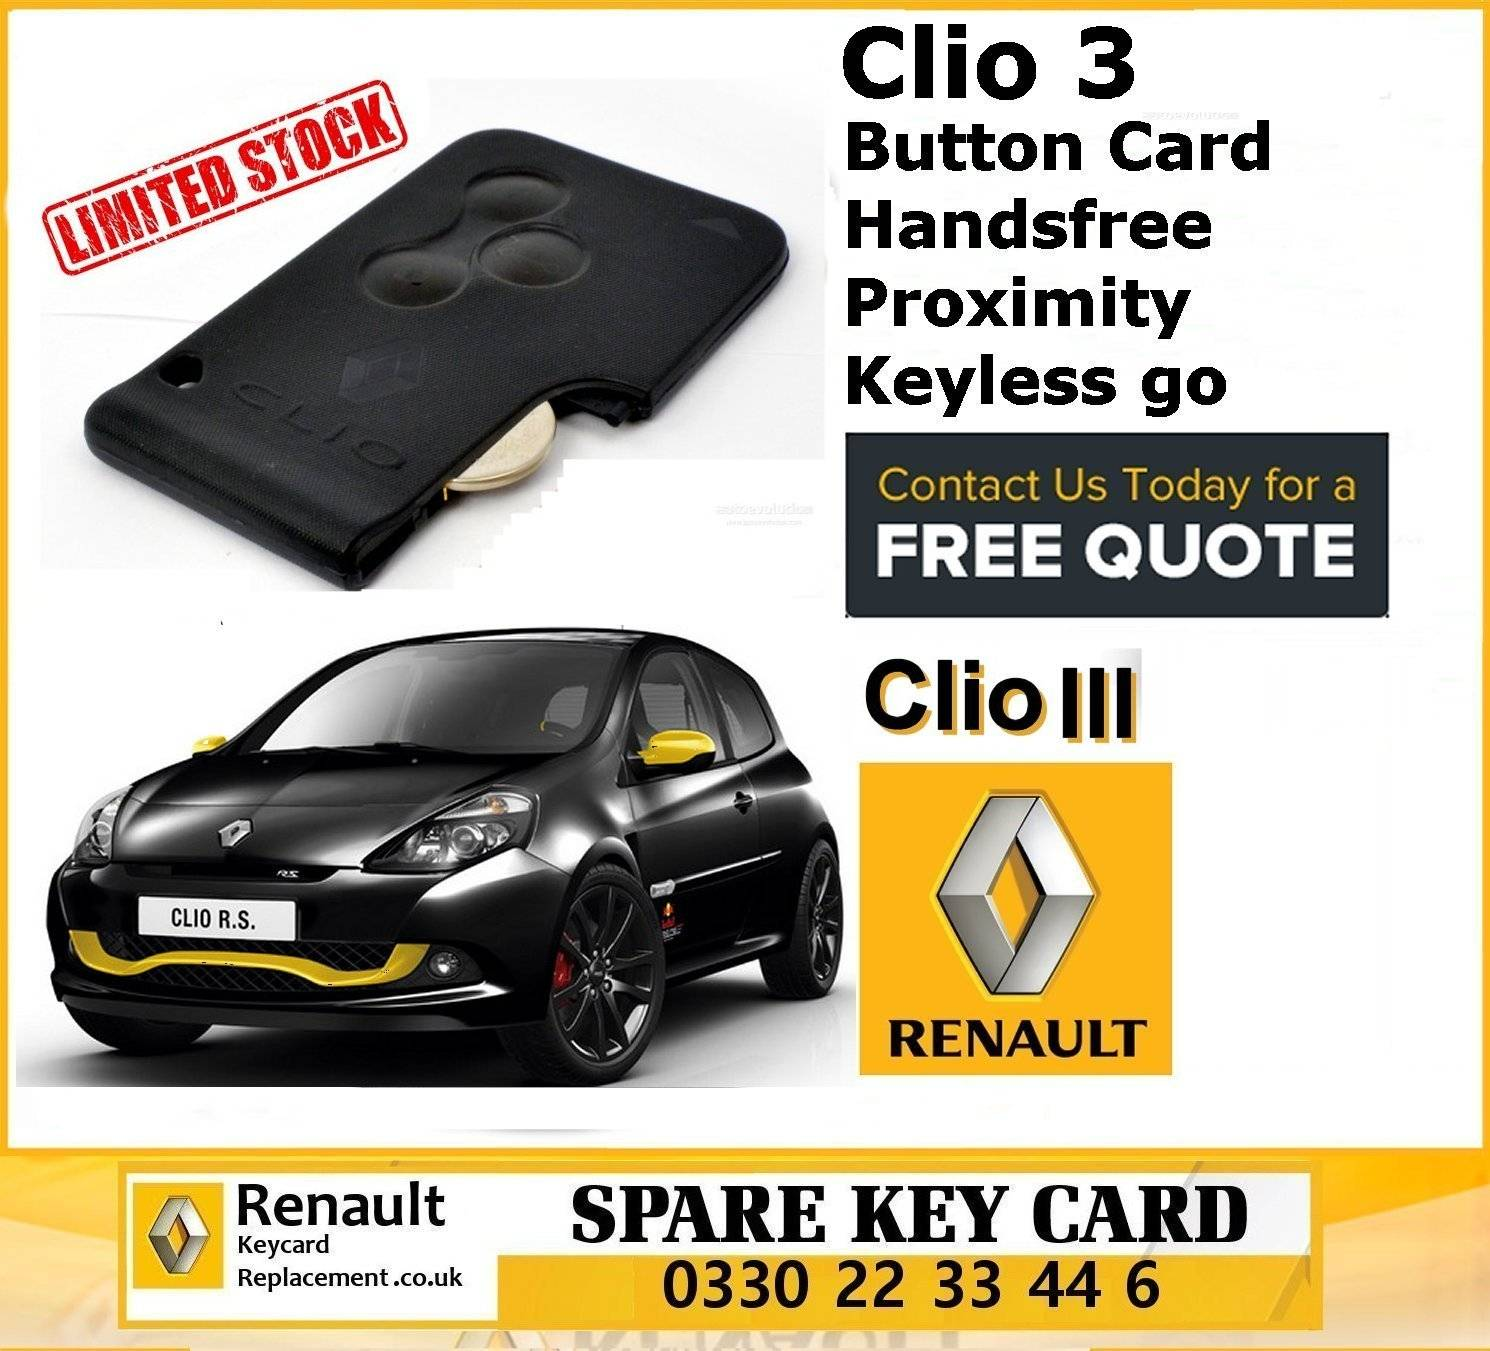 OEM Renault Clio 3 Button Card Handsfree/Proximity/Keyless go with PCF7943 ID46 Transponder Chip without Key Blade cut to original key number. Lock, Unlock and Boot Button [CLONE]